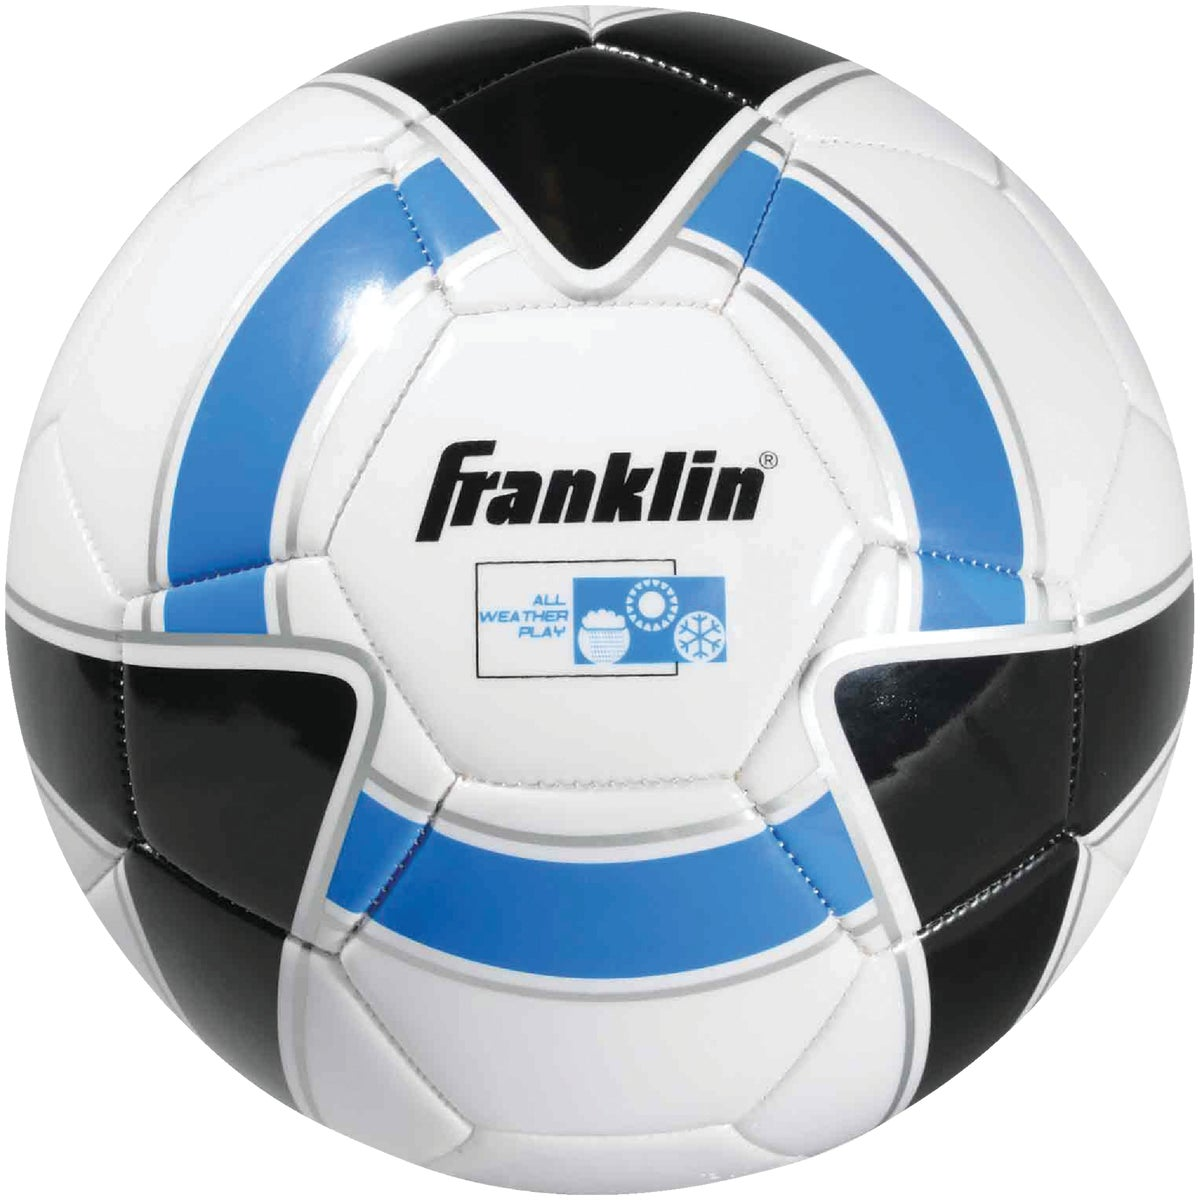 SIZE 5 SOCCER BALL - 31014 by Huffy Sports